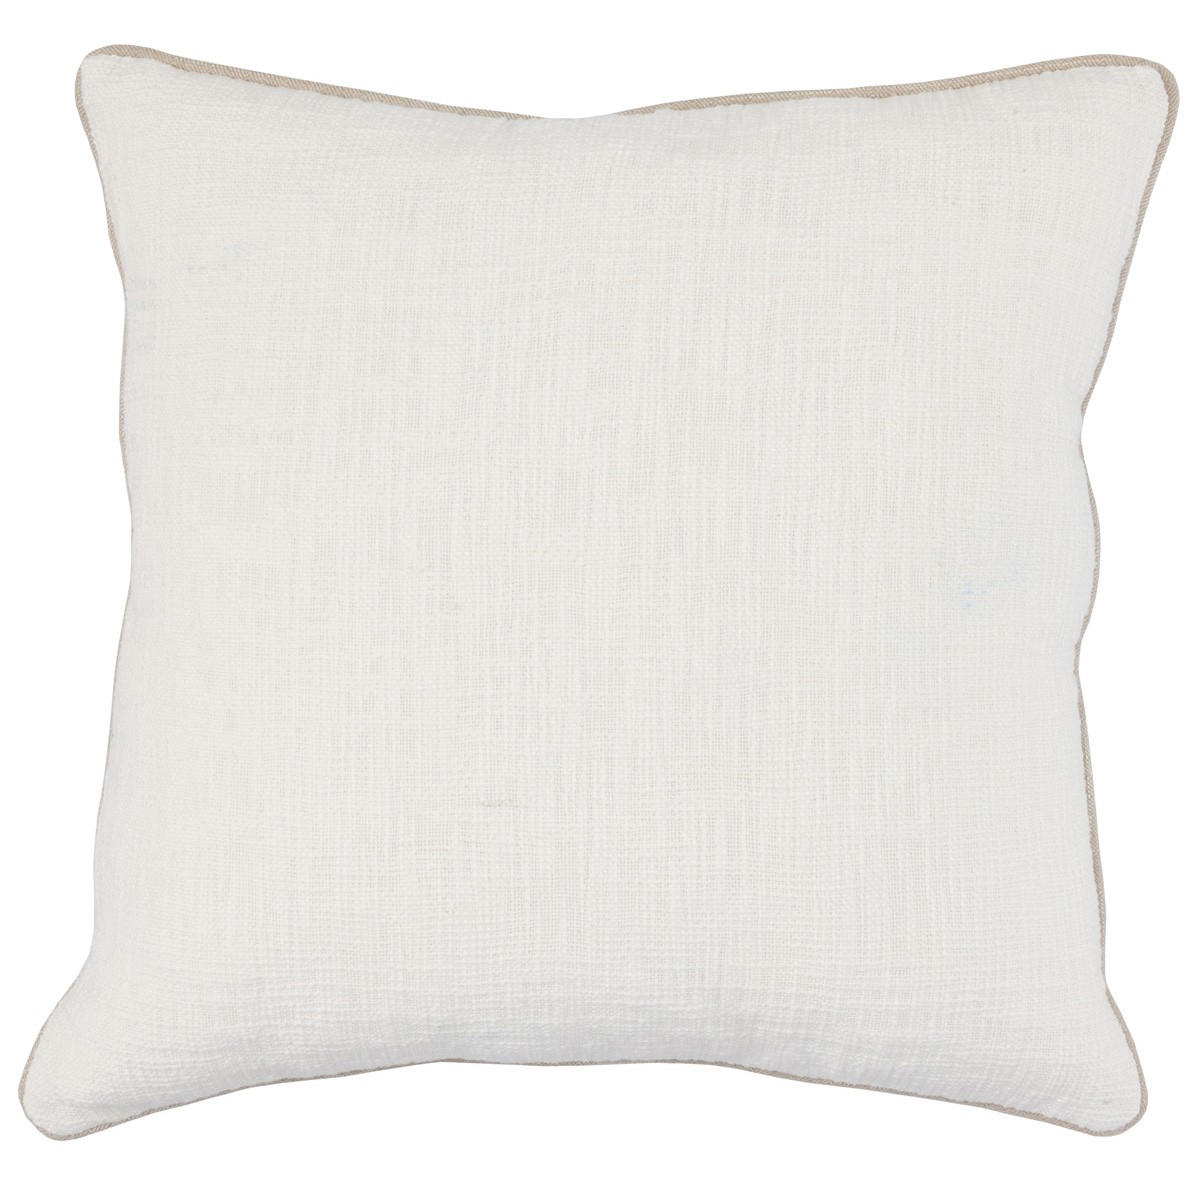 "Textured Pillow with Piping- 22""x22"" Alba"